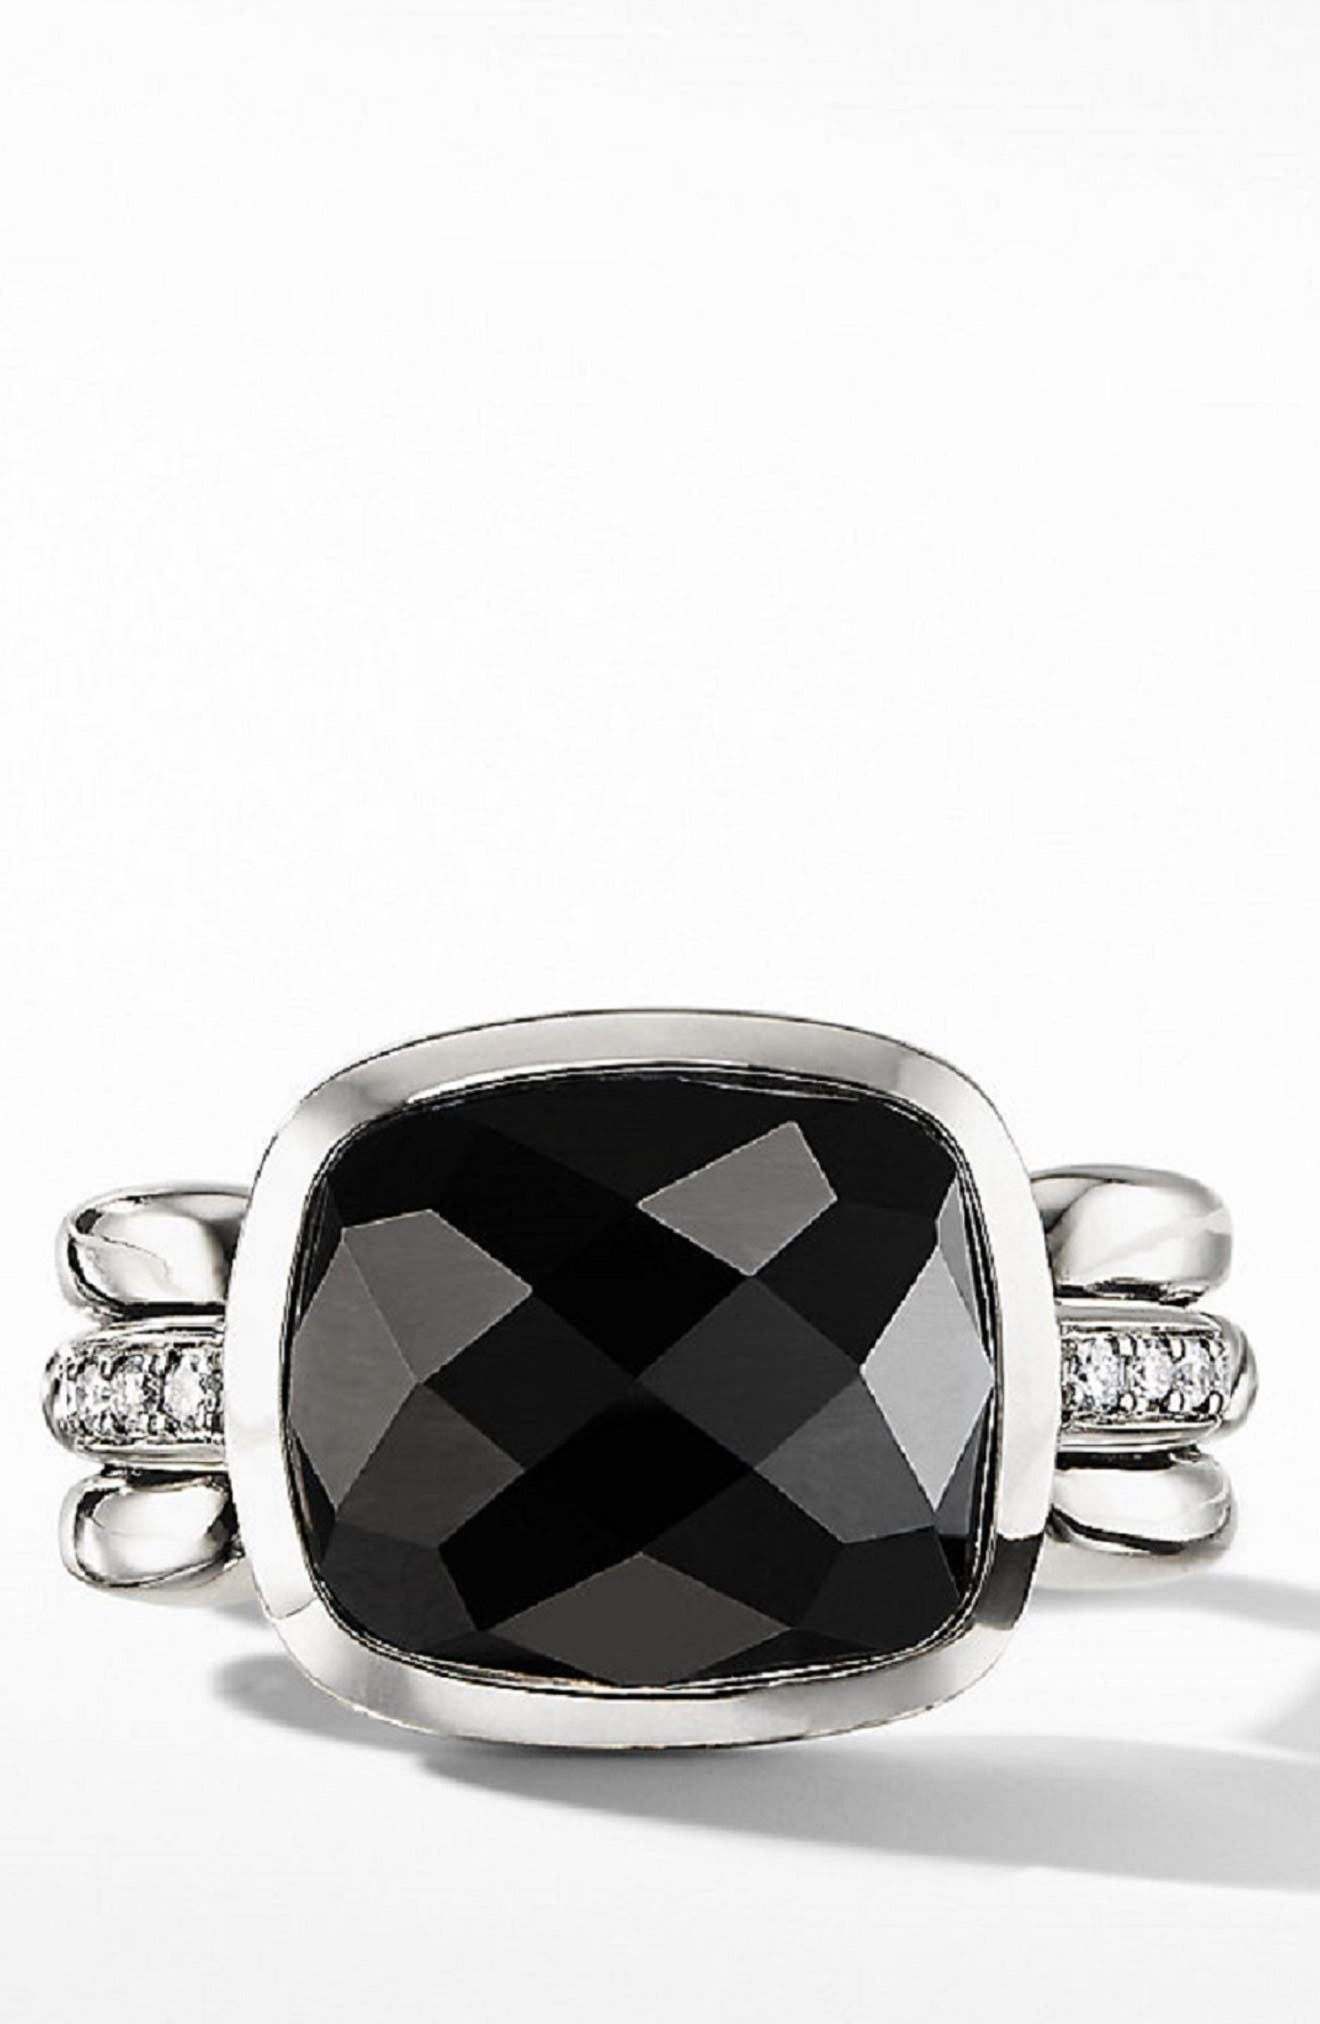 Wellesley Link Statement Ring with Diamonds,                             Alternate thumbnail 2, color,                             BLACK ONYX